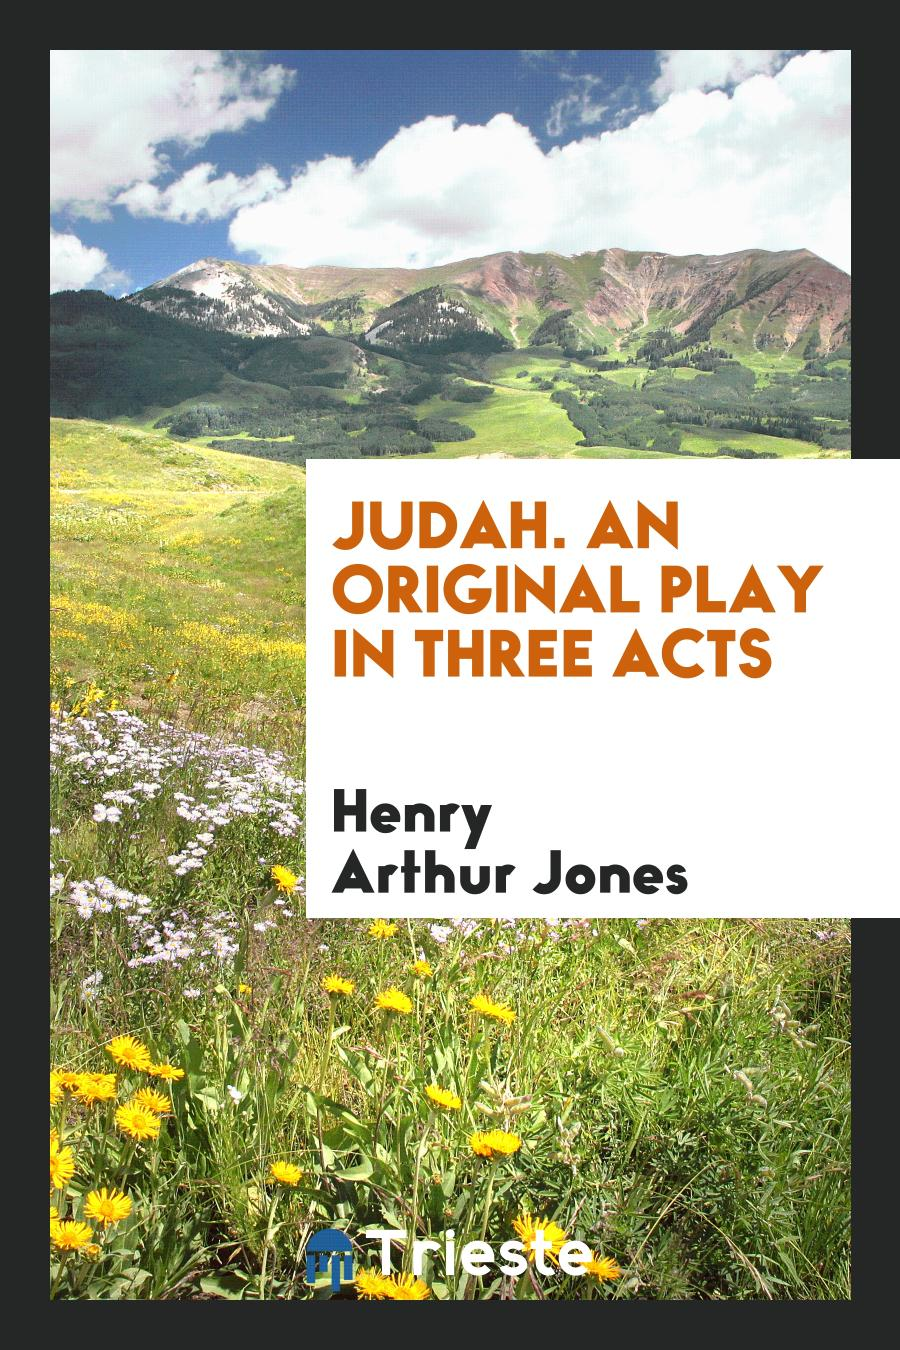 Judah. An Original Play in Three Acts